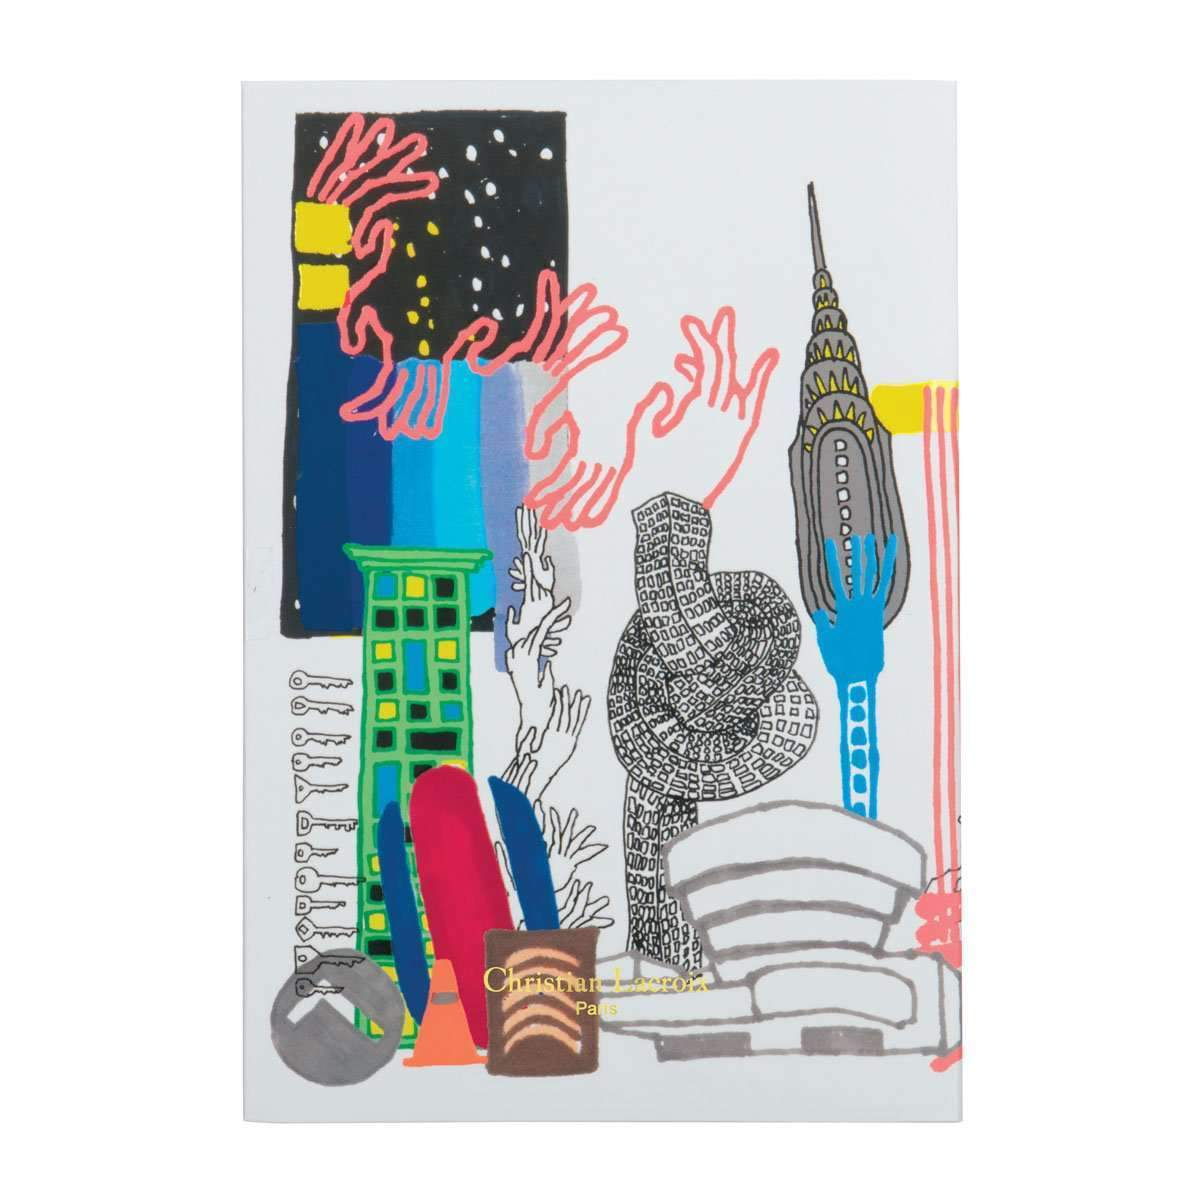 New York Brian Kenny Notebook Christian Lacroix Notebooks and Journals Christian Lacroix